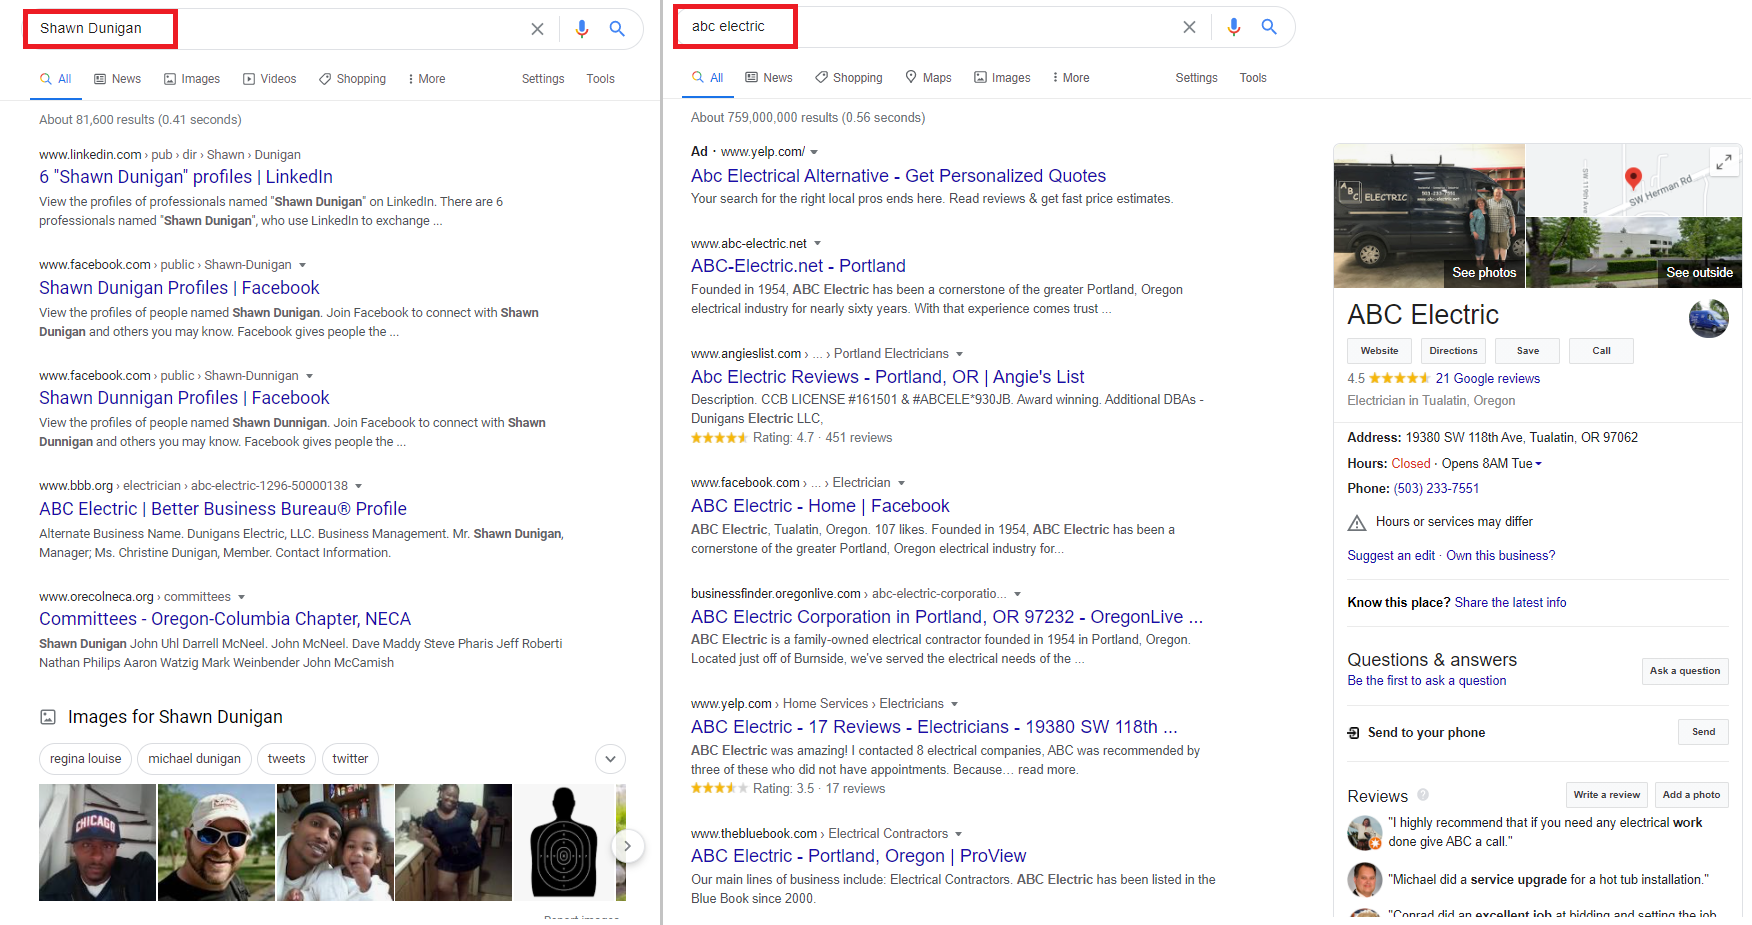 comparison of business and personal google search results